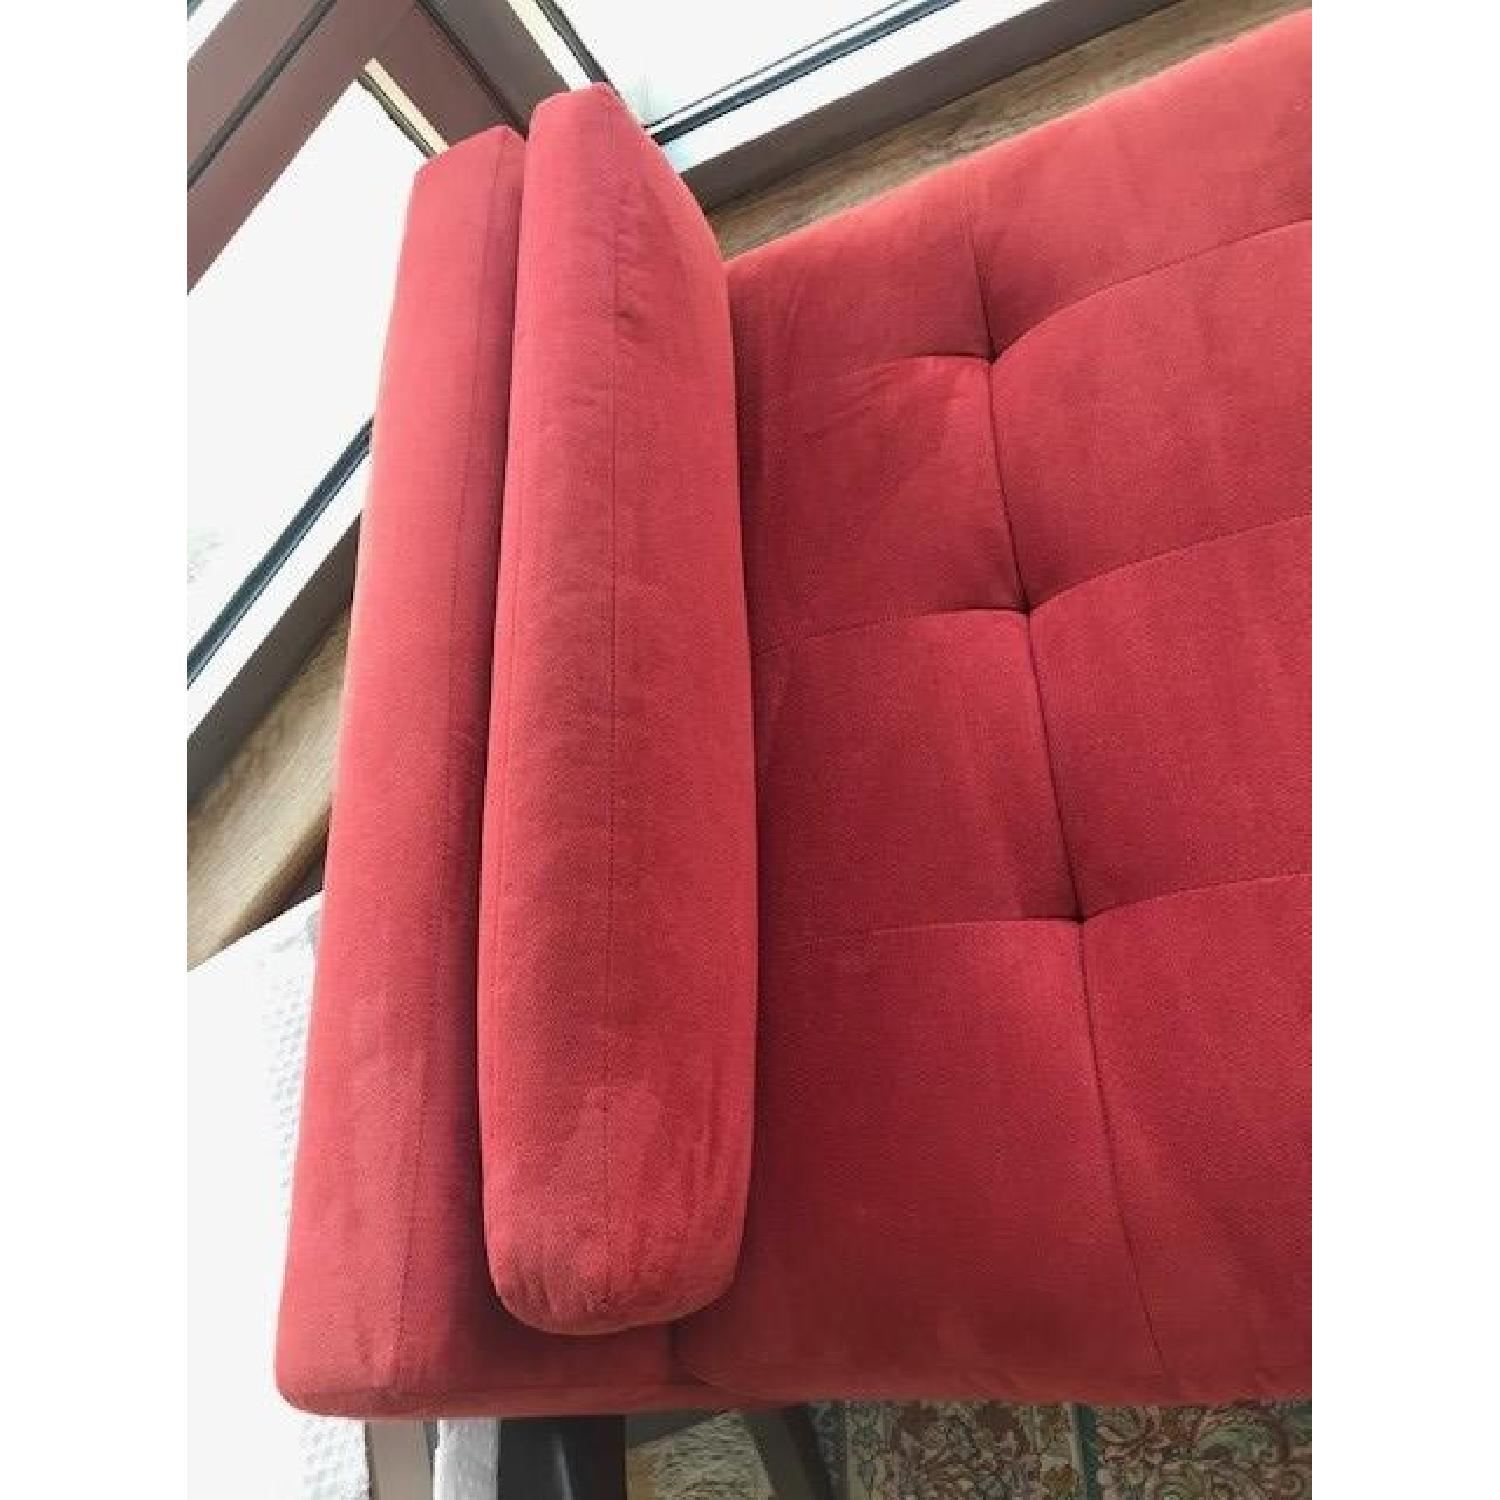 Macy's Max Home Amalfi Red Microfiber Chaise/Daybed - image-5